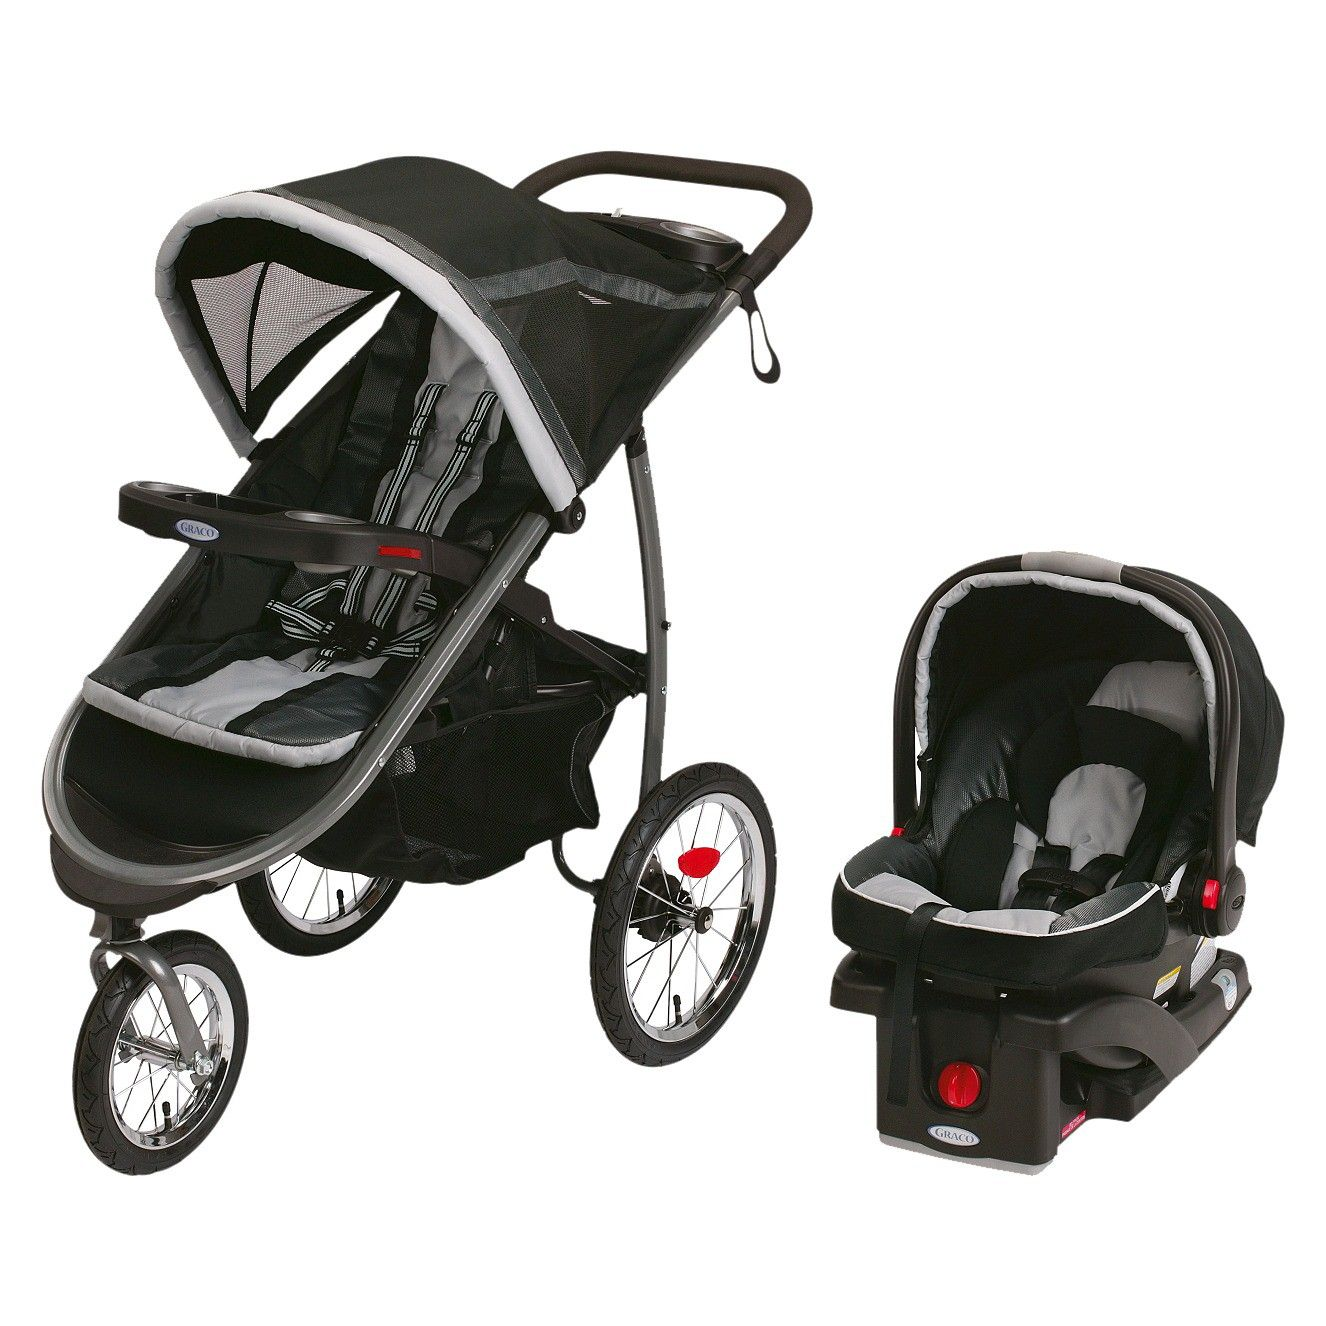 Graco 174 Fast Action Fold Jogger Click Connect Travel